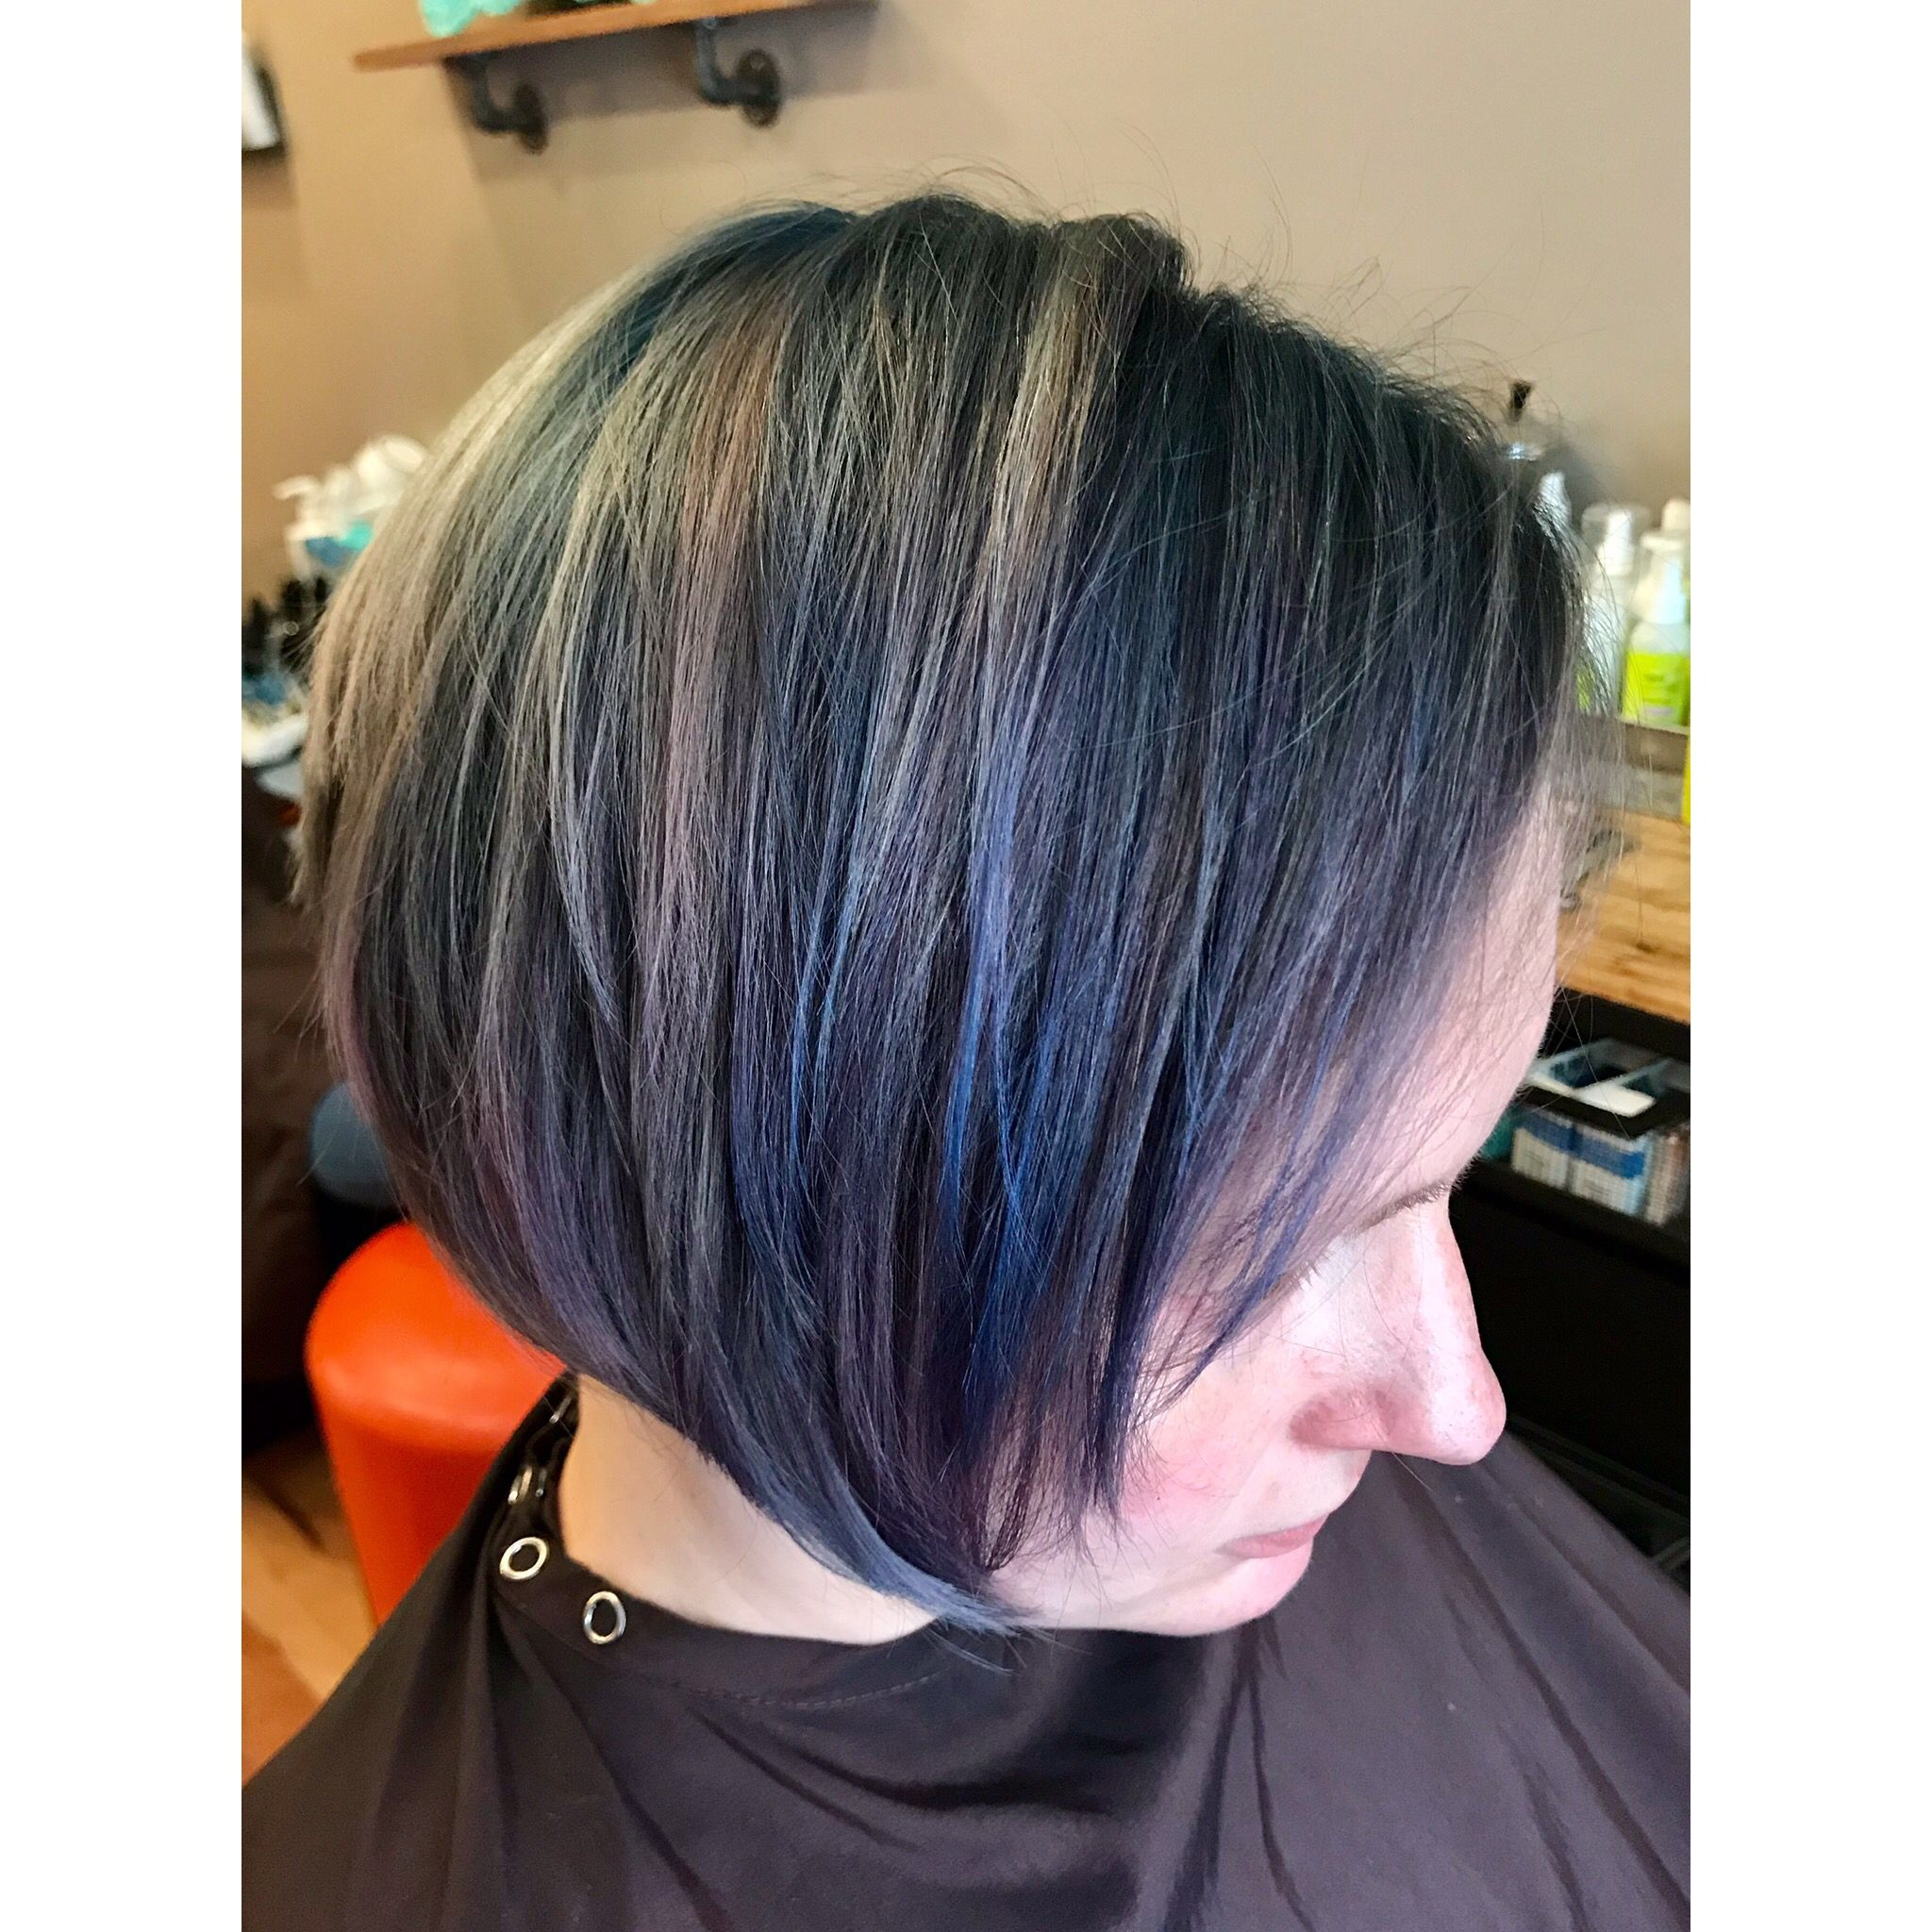 These Smokey Pastels Change With Each Glance Like A Subtle Impressionist Watercolor On Her Dark Hair Oilsli Oil Slick Hair Pastel Green Hair Hair Colorist